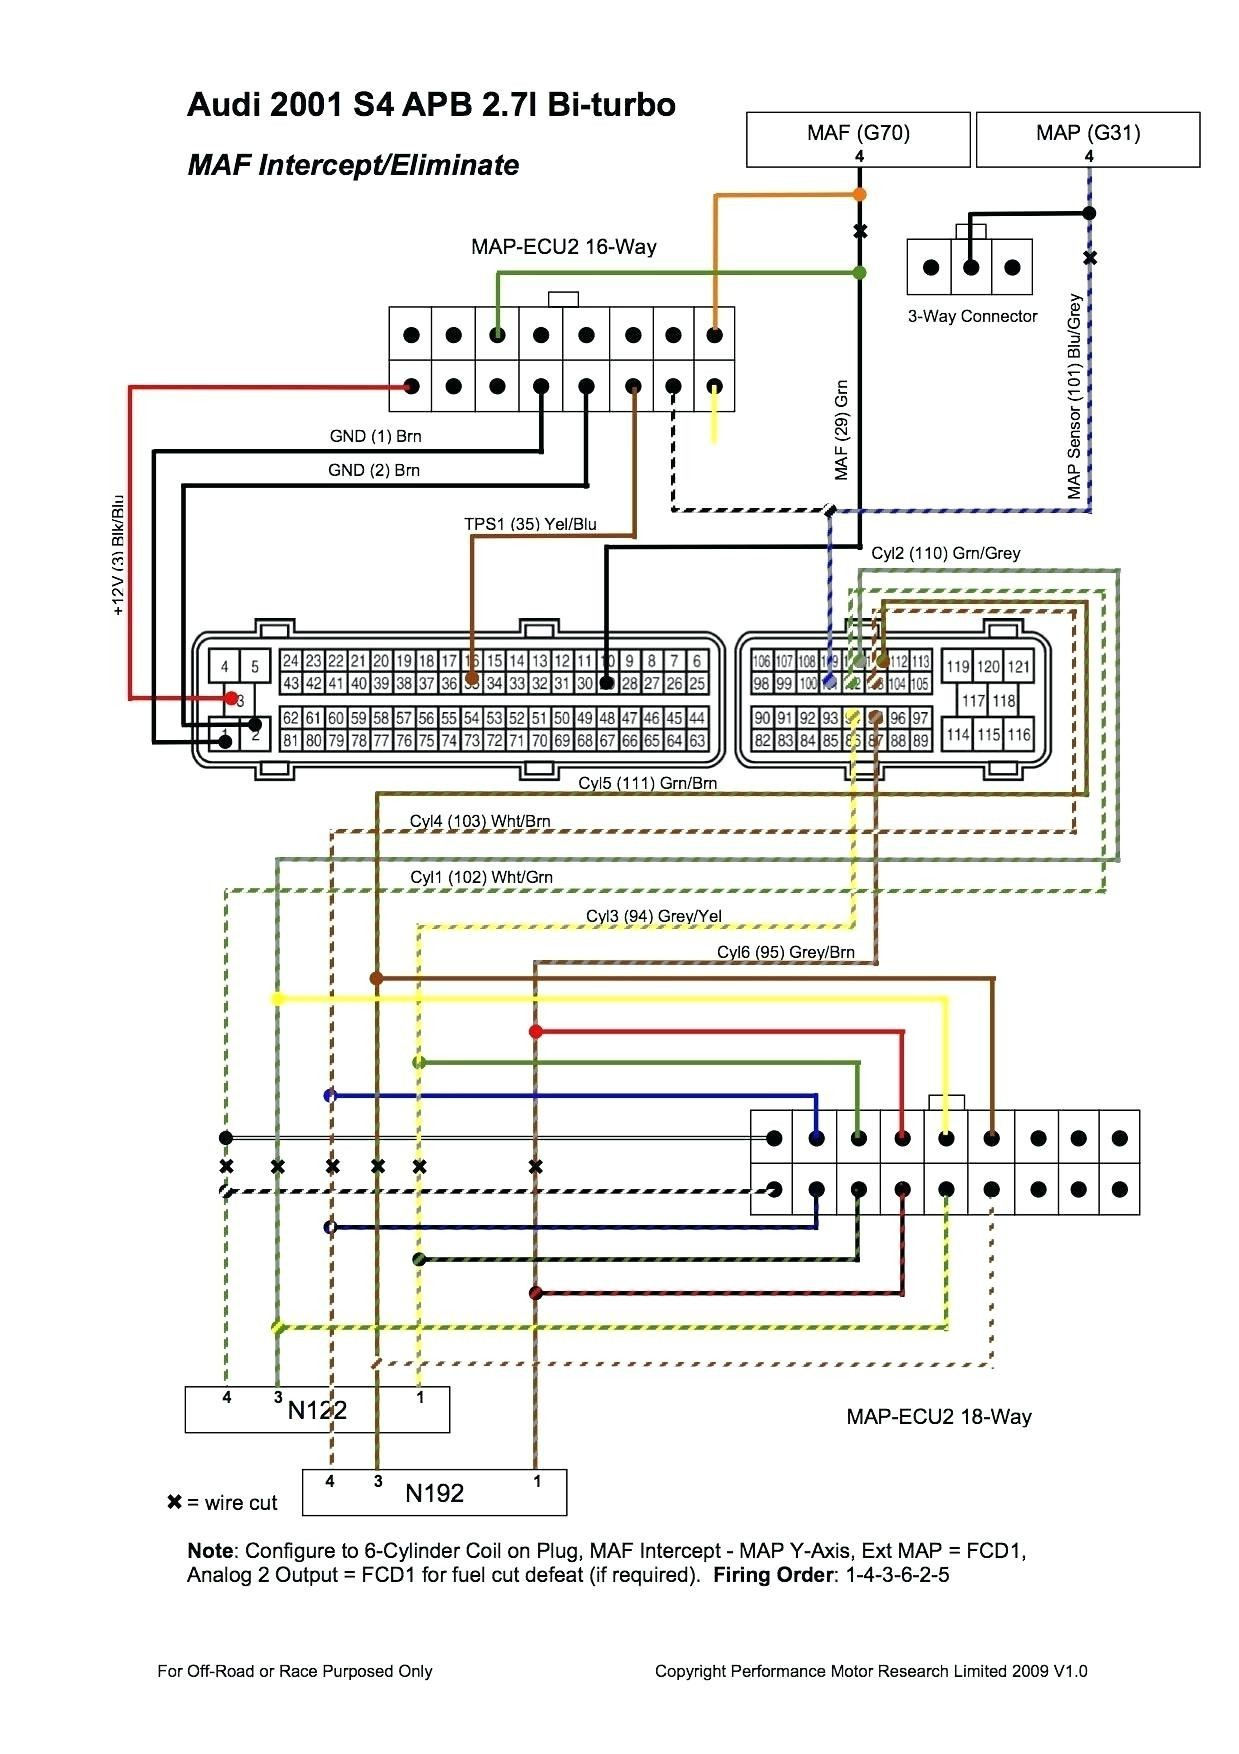 2005 Dodge Neon Wiring Diagram from detoxicrecenze.com